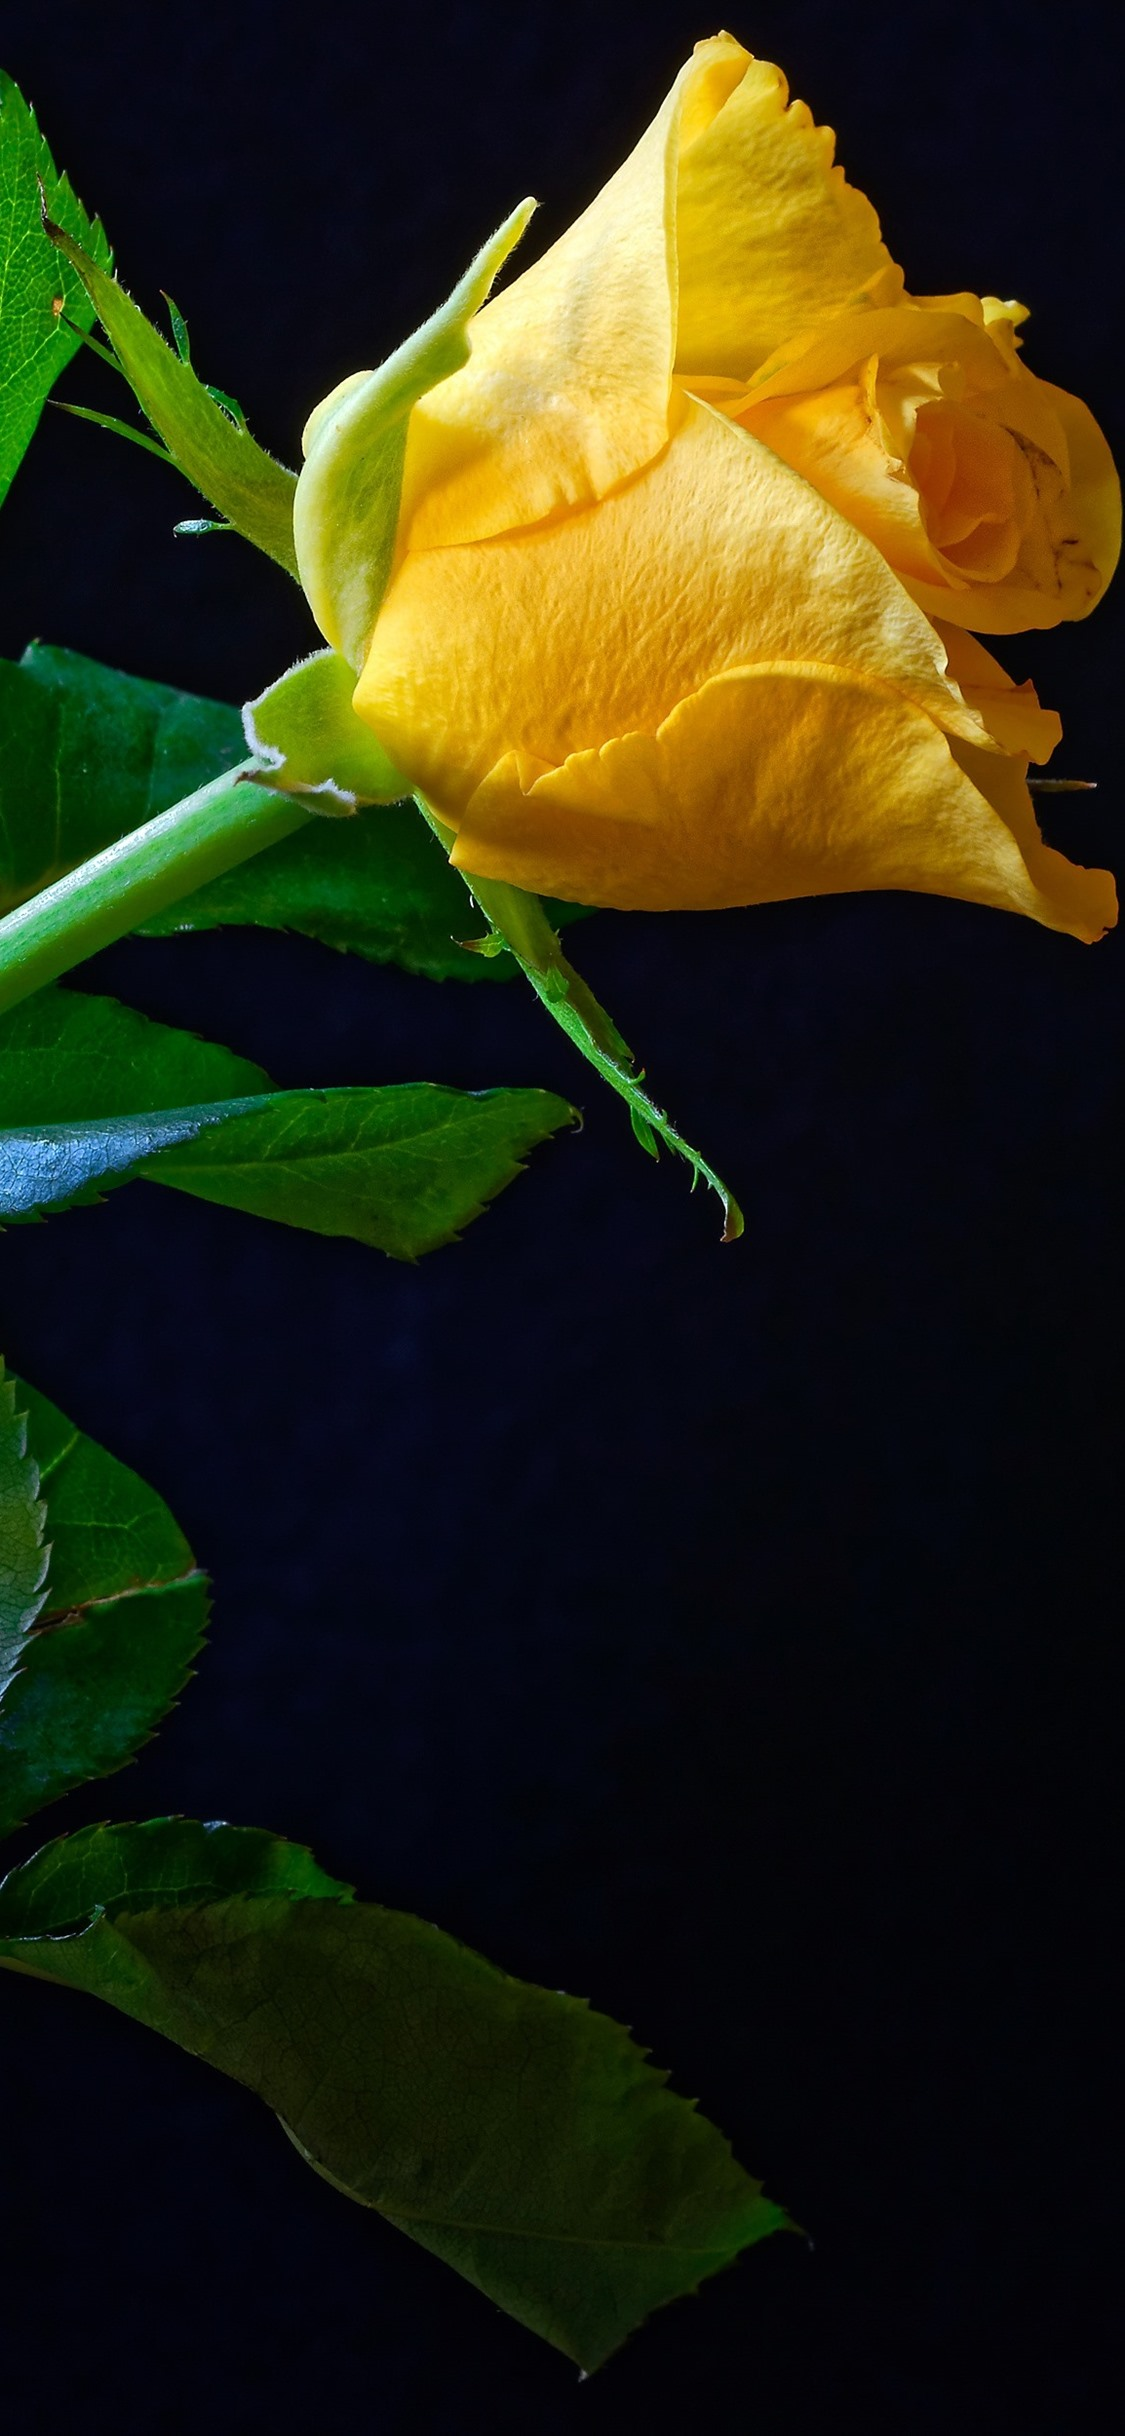 Iphone Wallpaper One Yellow Rose Green Foliage Black Yellow Rose With Black Background 1125x2436 Wallpaper Teahub Io